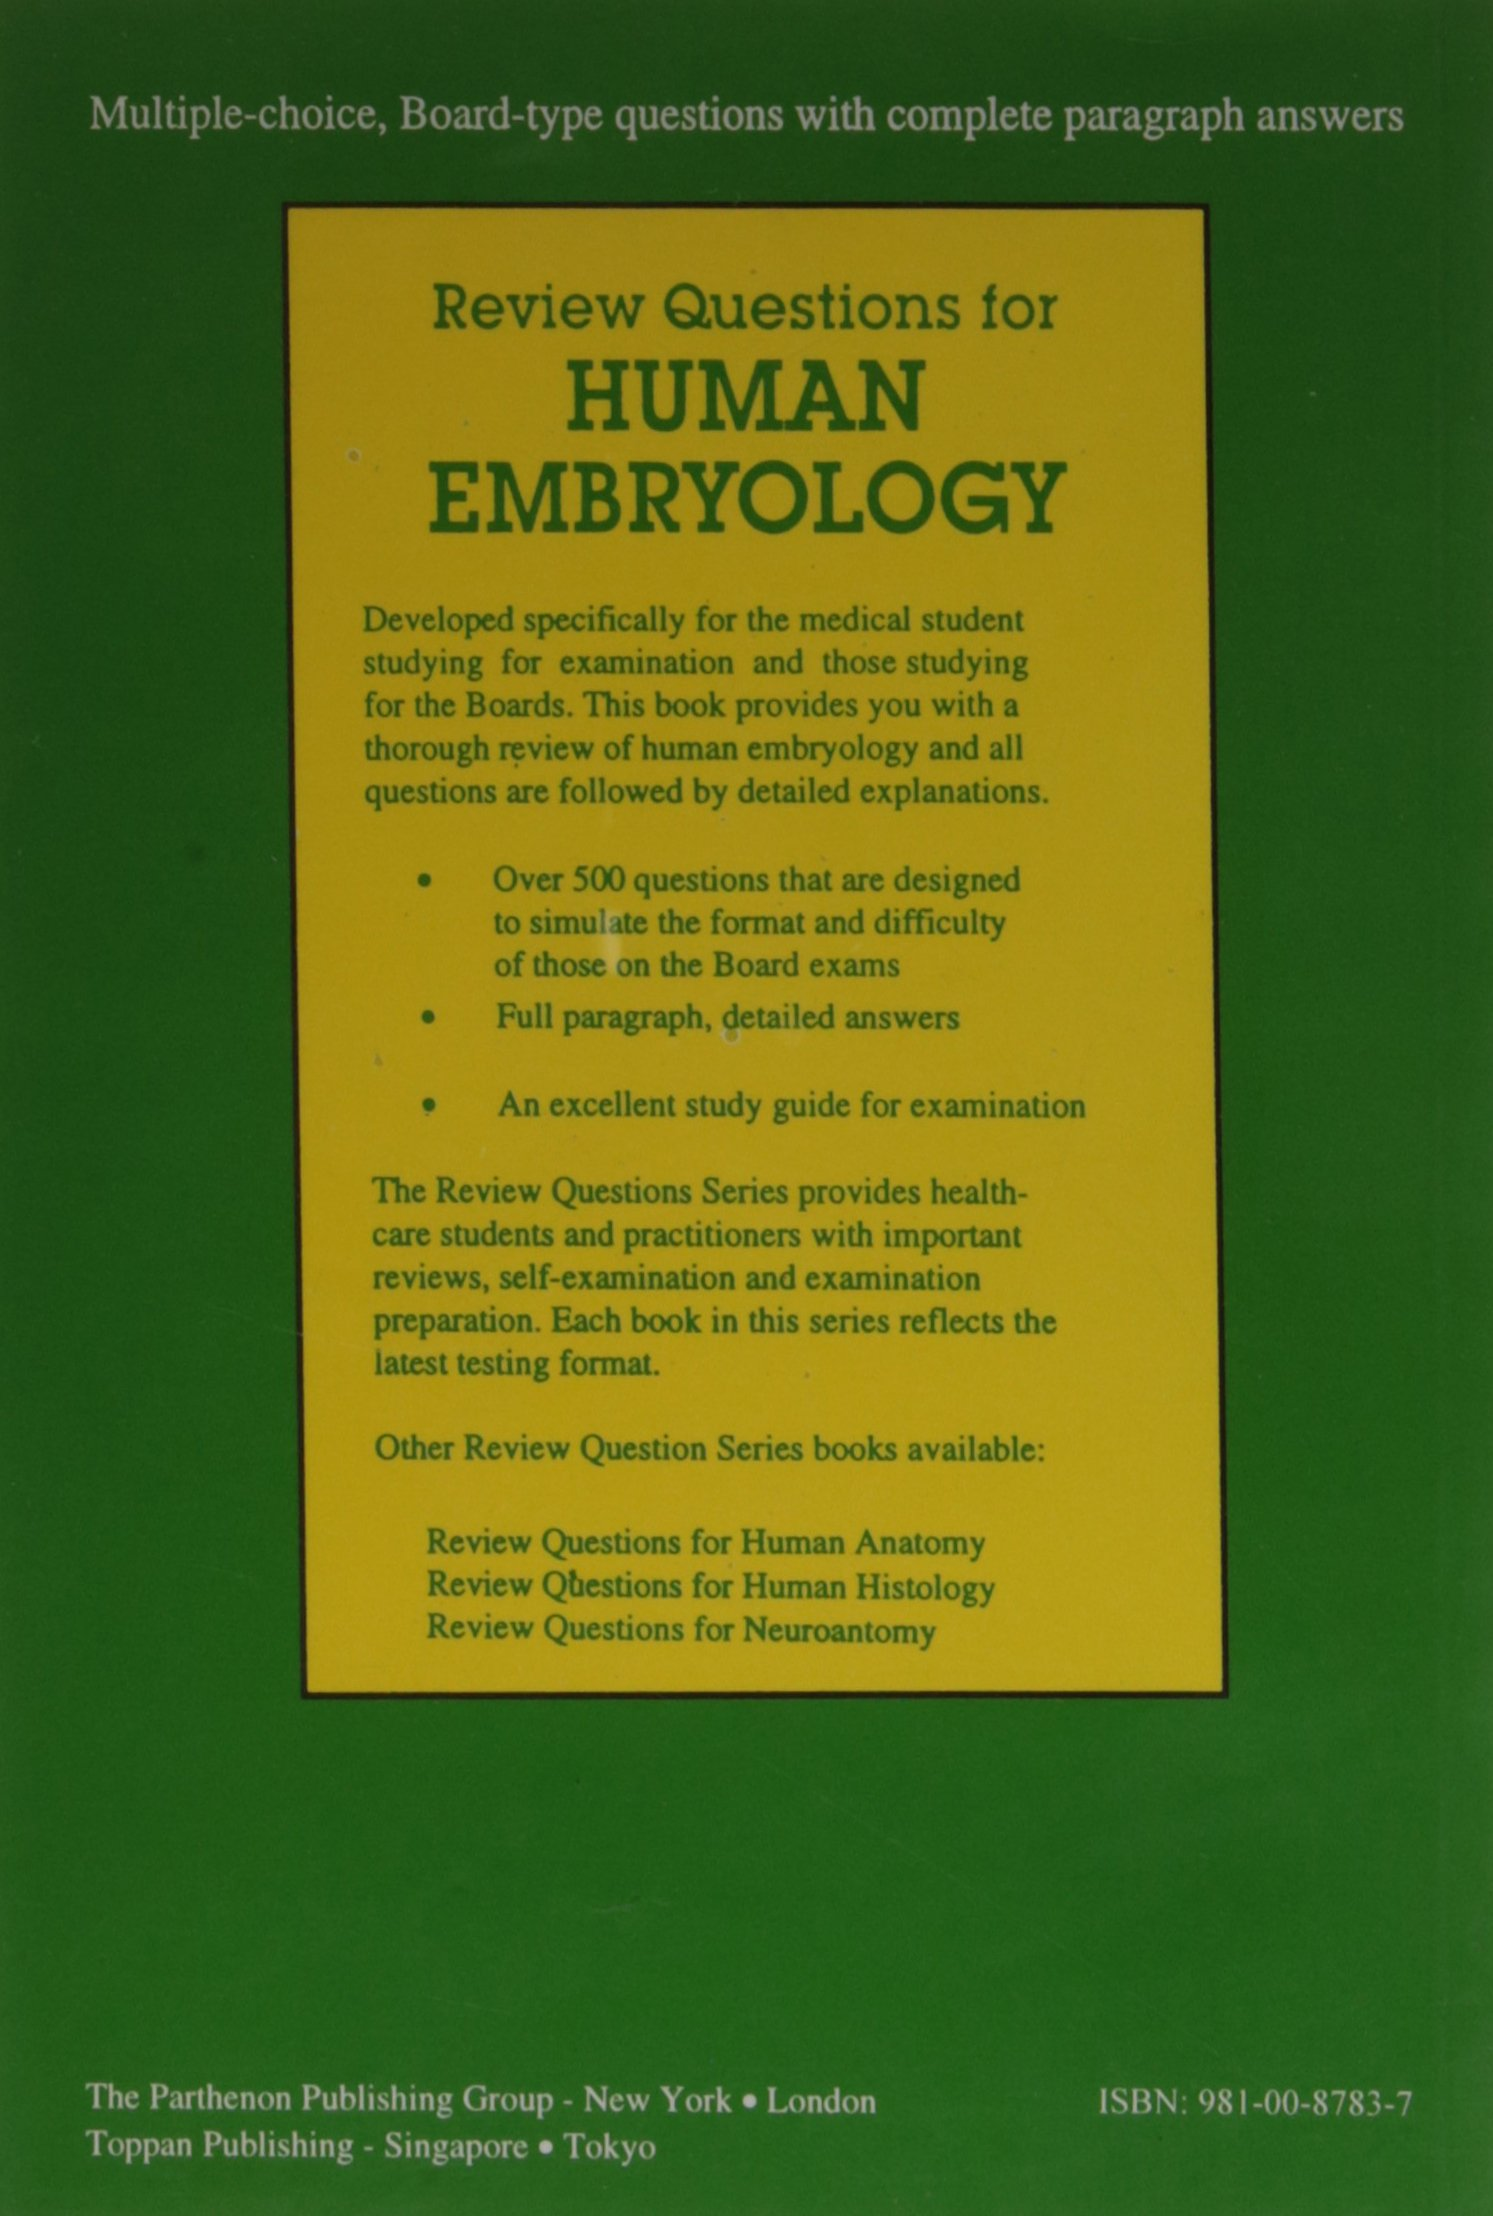 Amazon Buy Review Questions For Human Embryology Book Online At